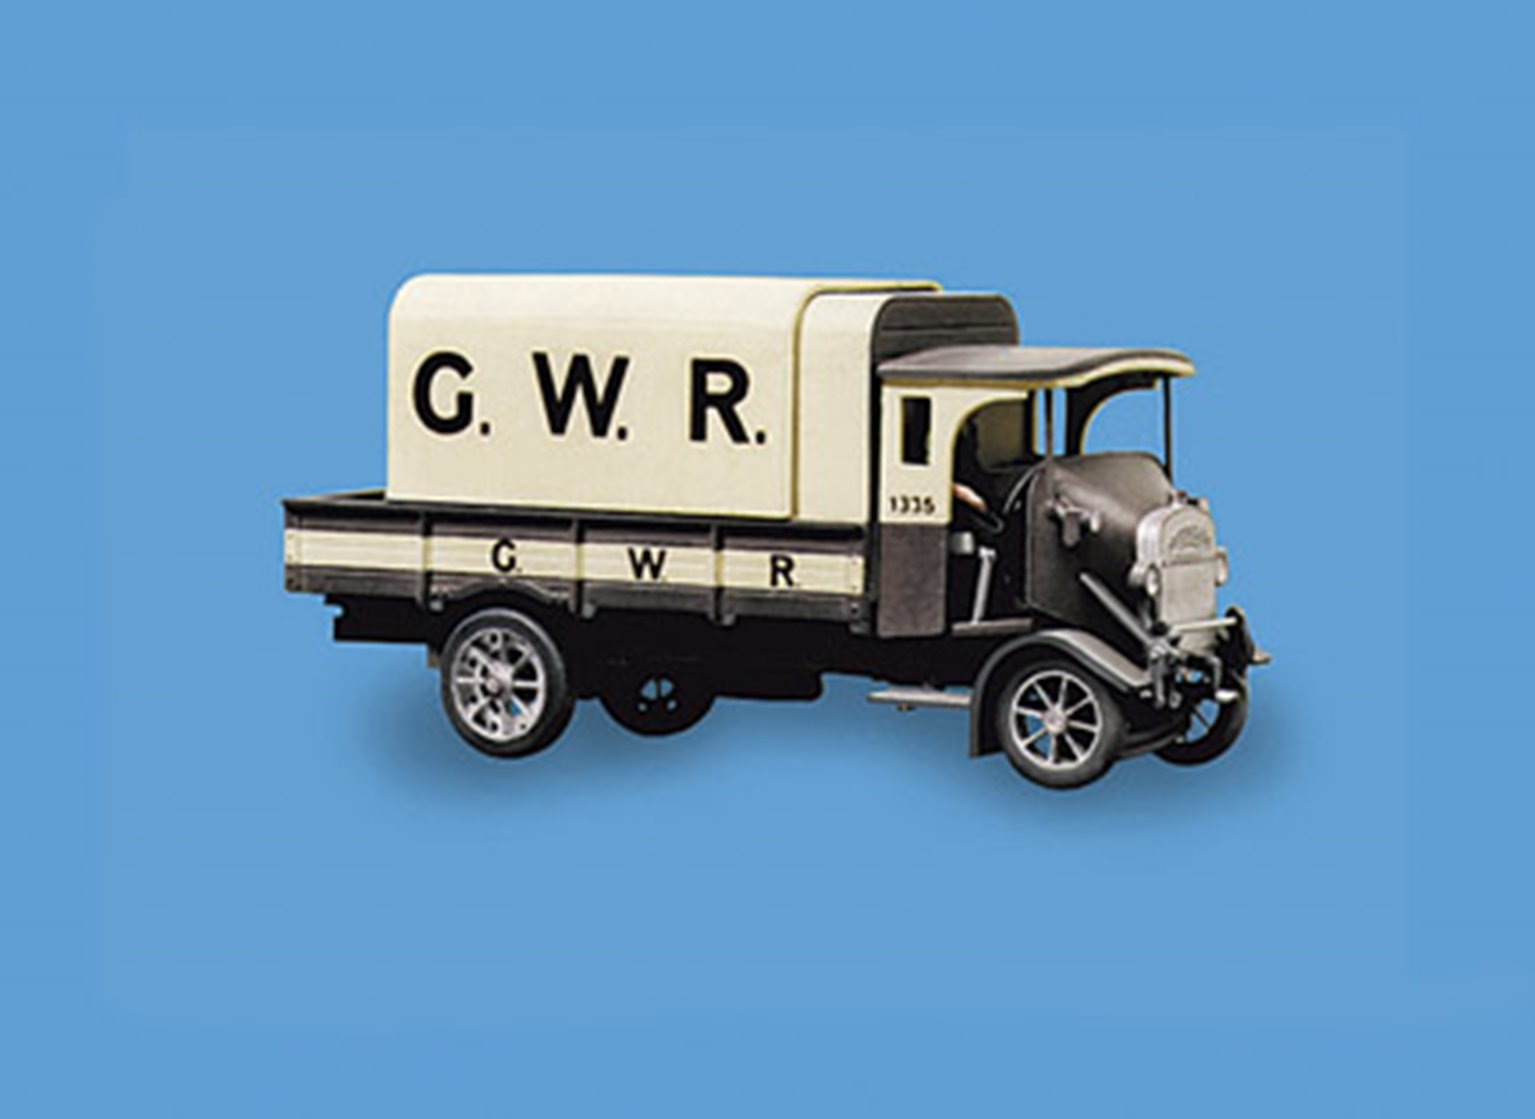 Thornycroft PB 4 ton Lorry, GWR Livery Vehicle Kit